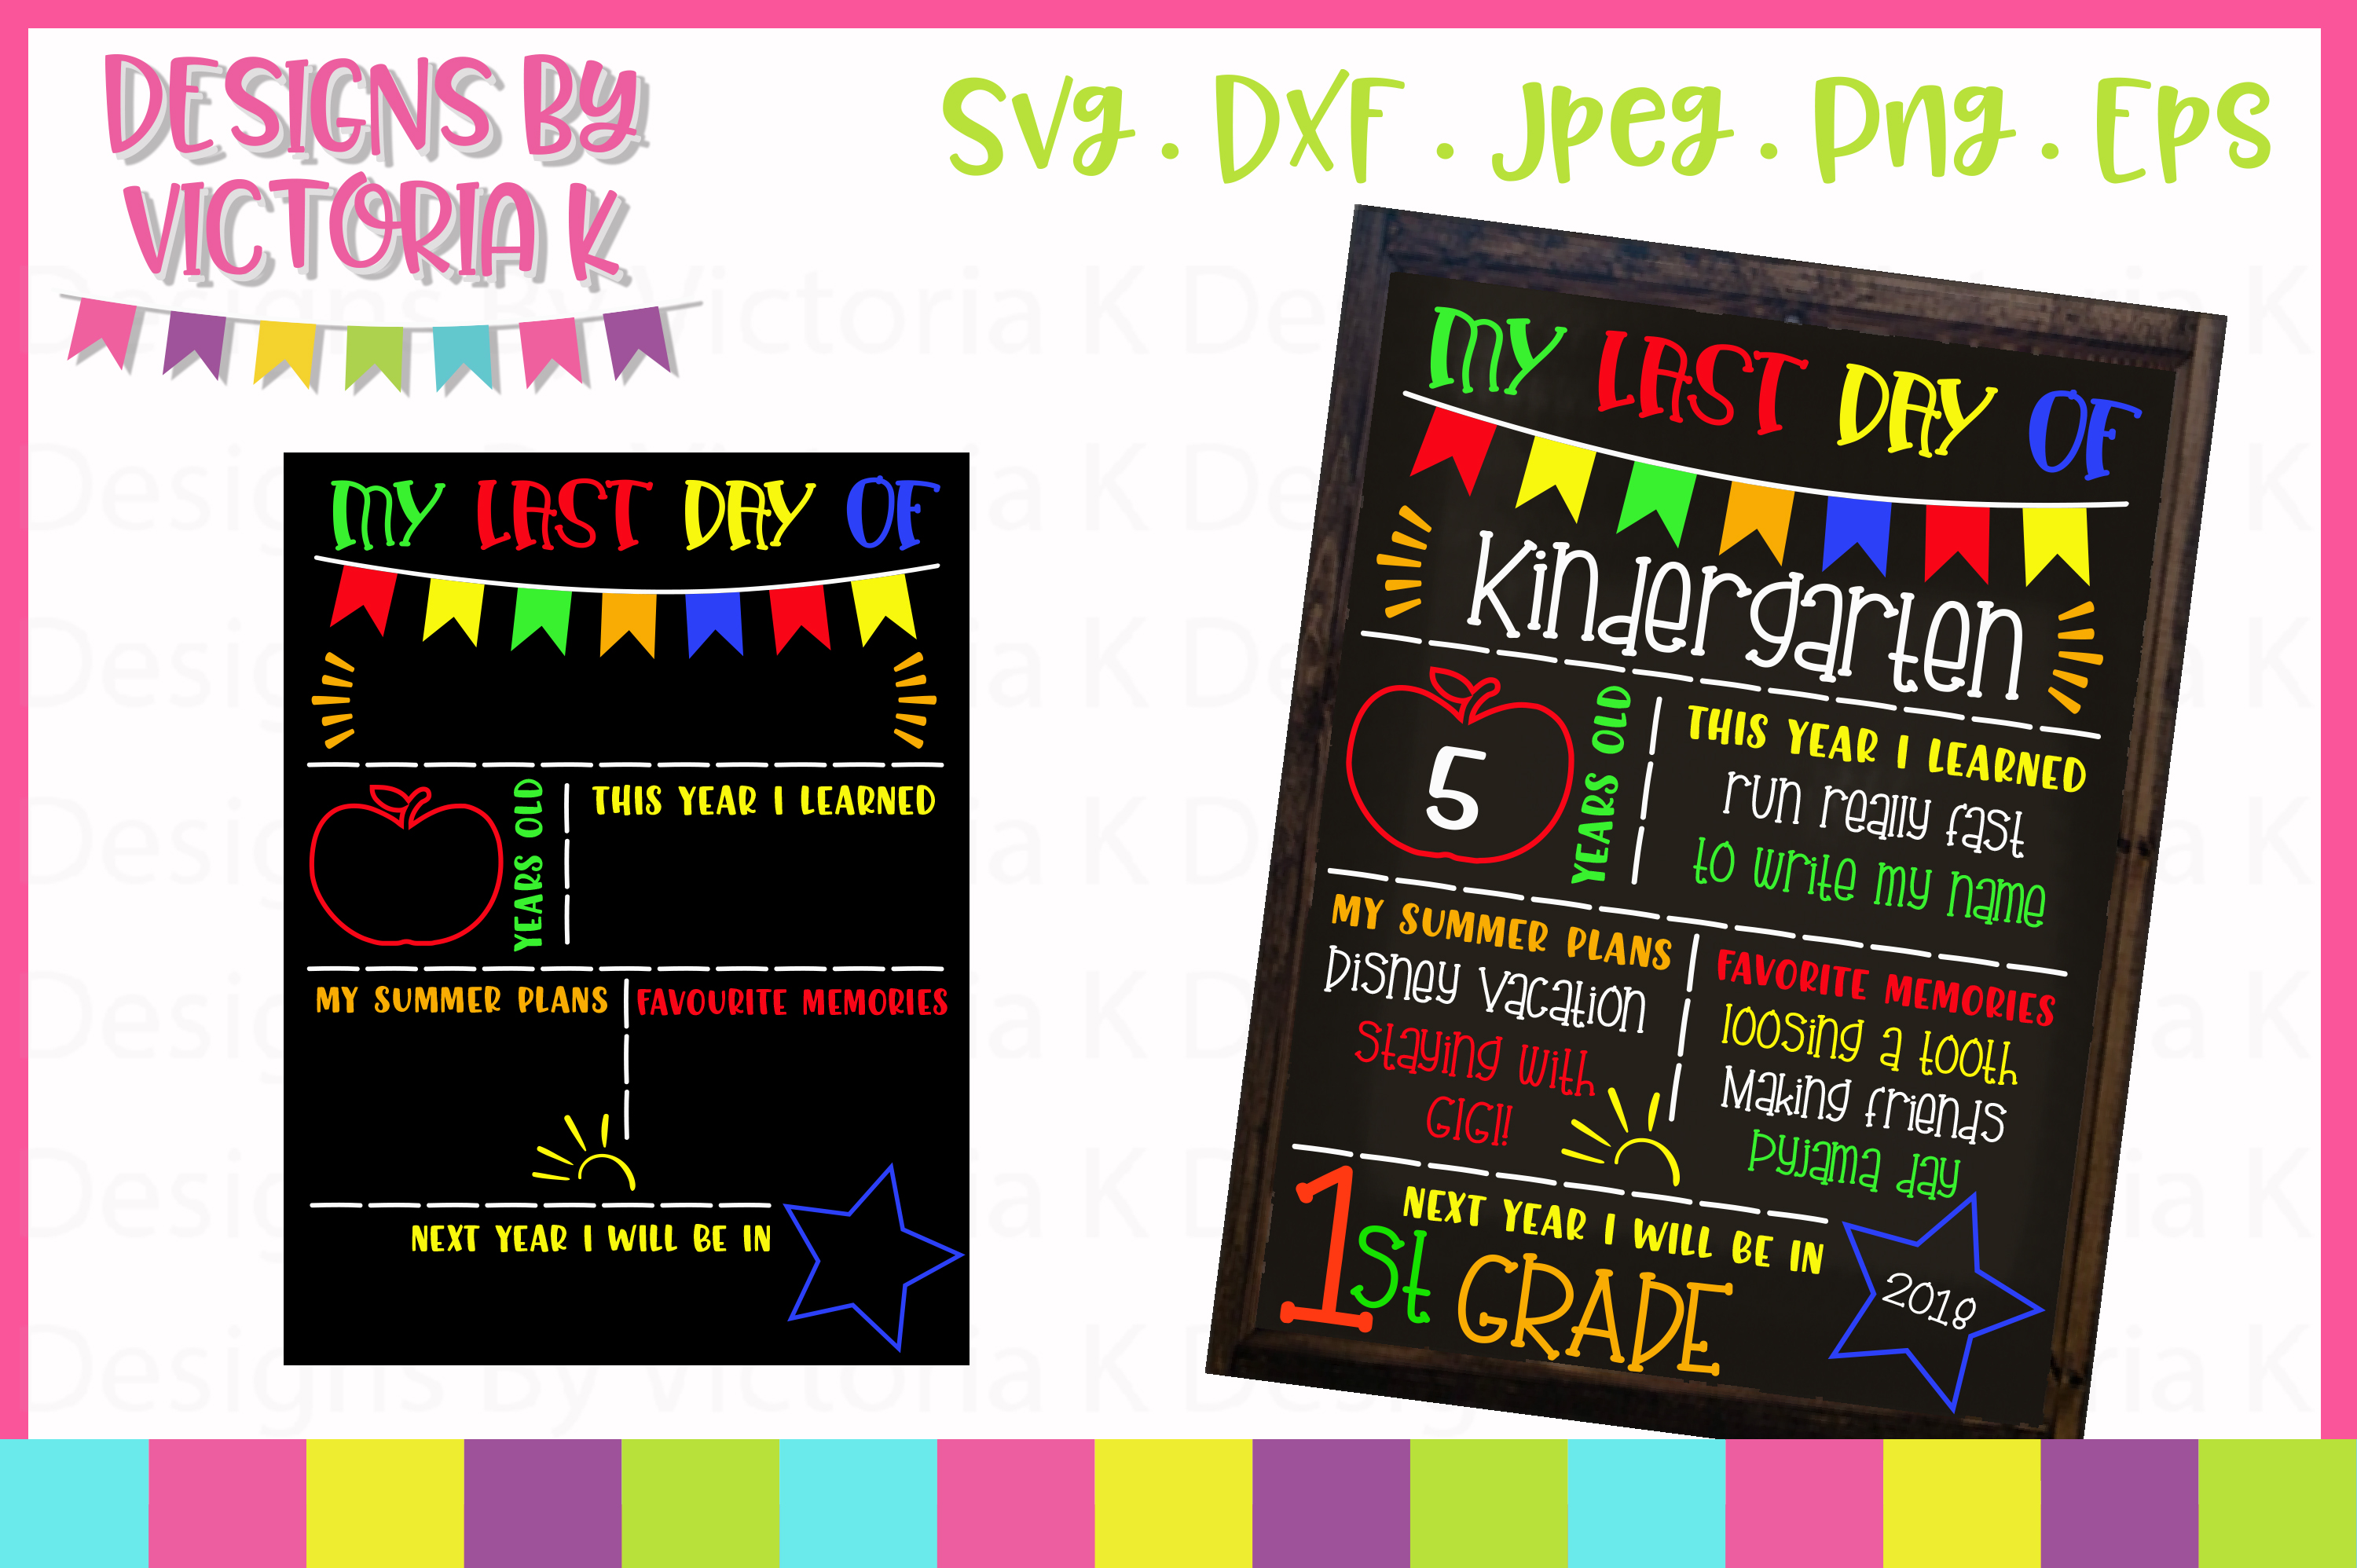 Last day of school board, chalkboard style, SVG, DXF, EPS example image 1